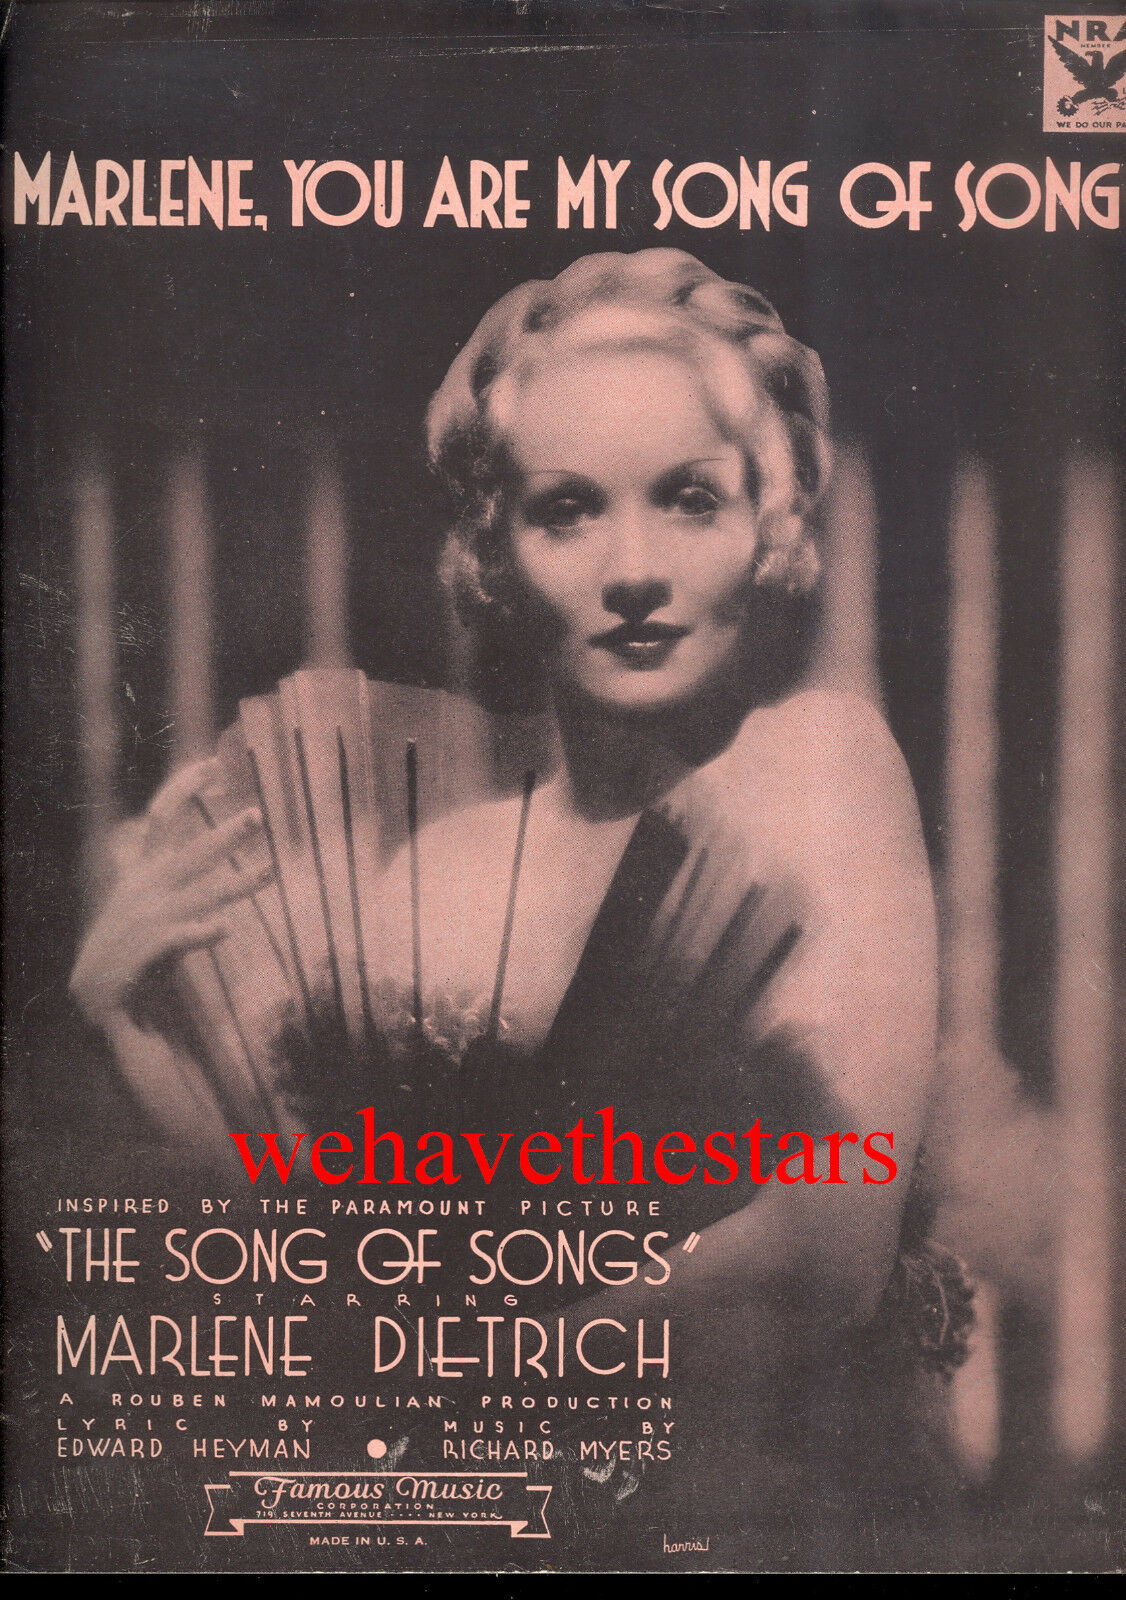 SONG OF SONGS Sheet Music  Marlene, You Are My Song Of Songs  Marlene Dietrich